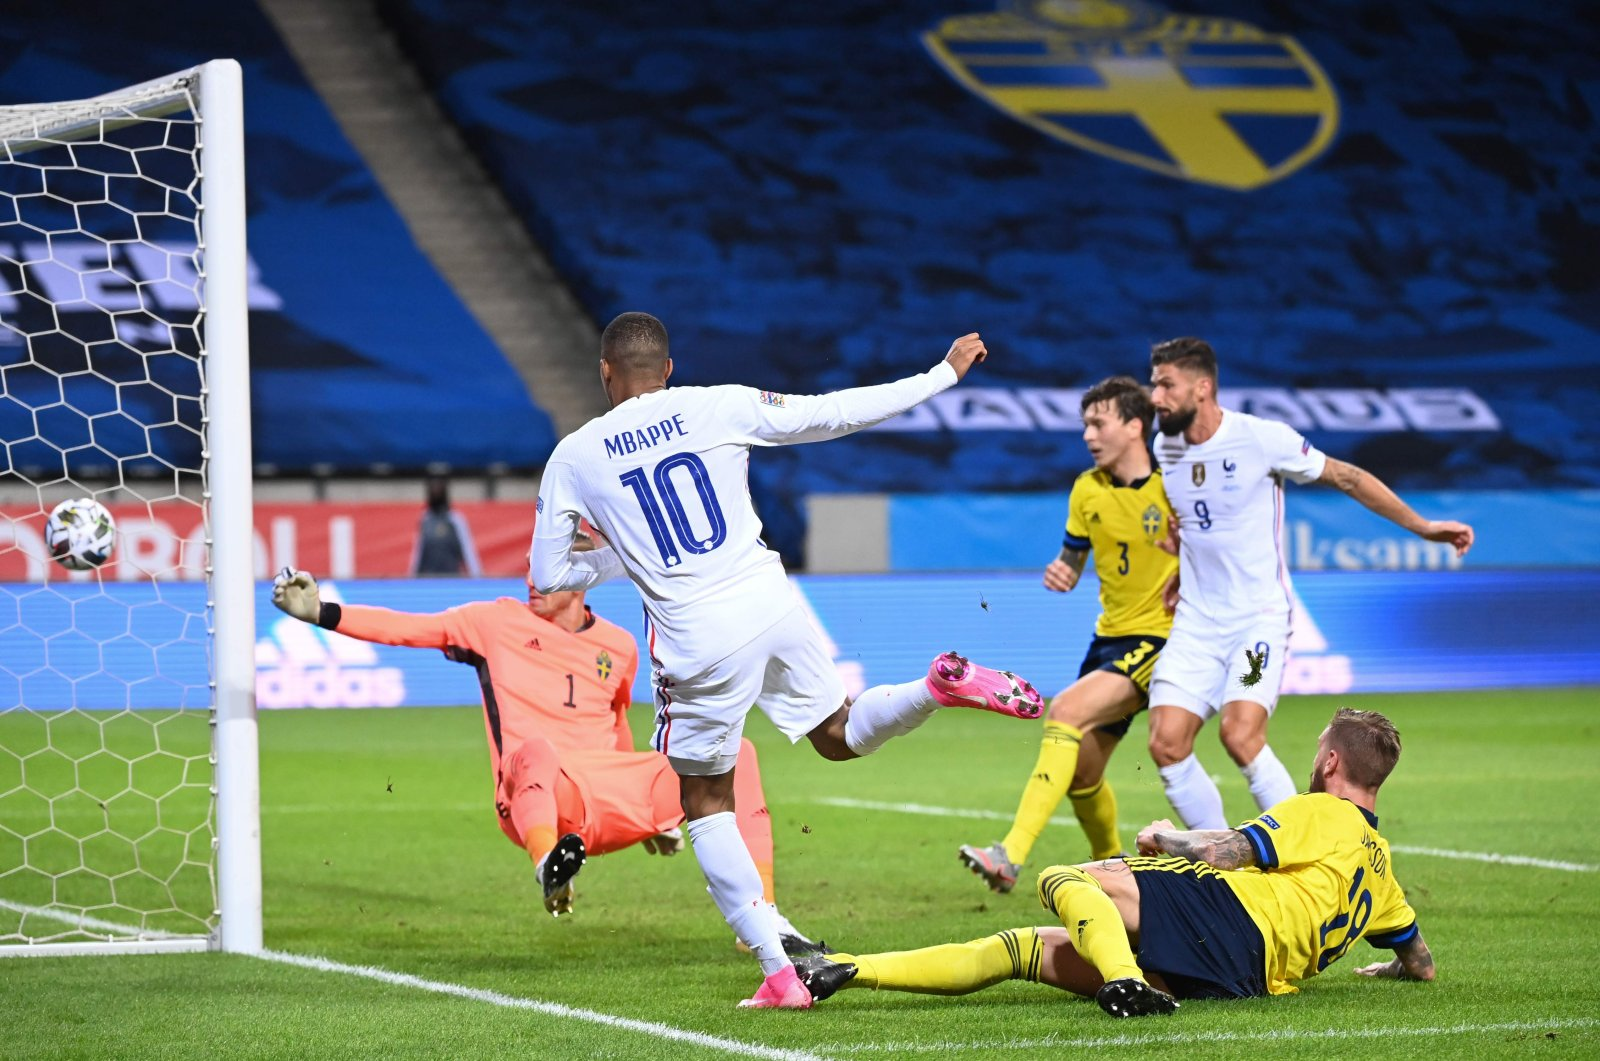 France's Kylian Mbappe scores the opening goal during the UEFA Nations League football match against Sweden in Stockholm, Sweden, Sept. 5, 2020. (AFP Photo)